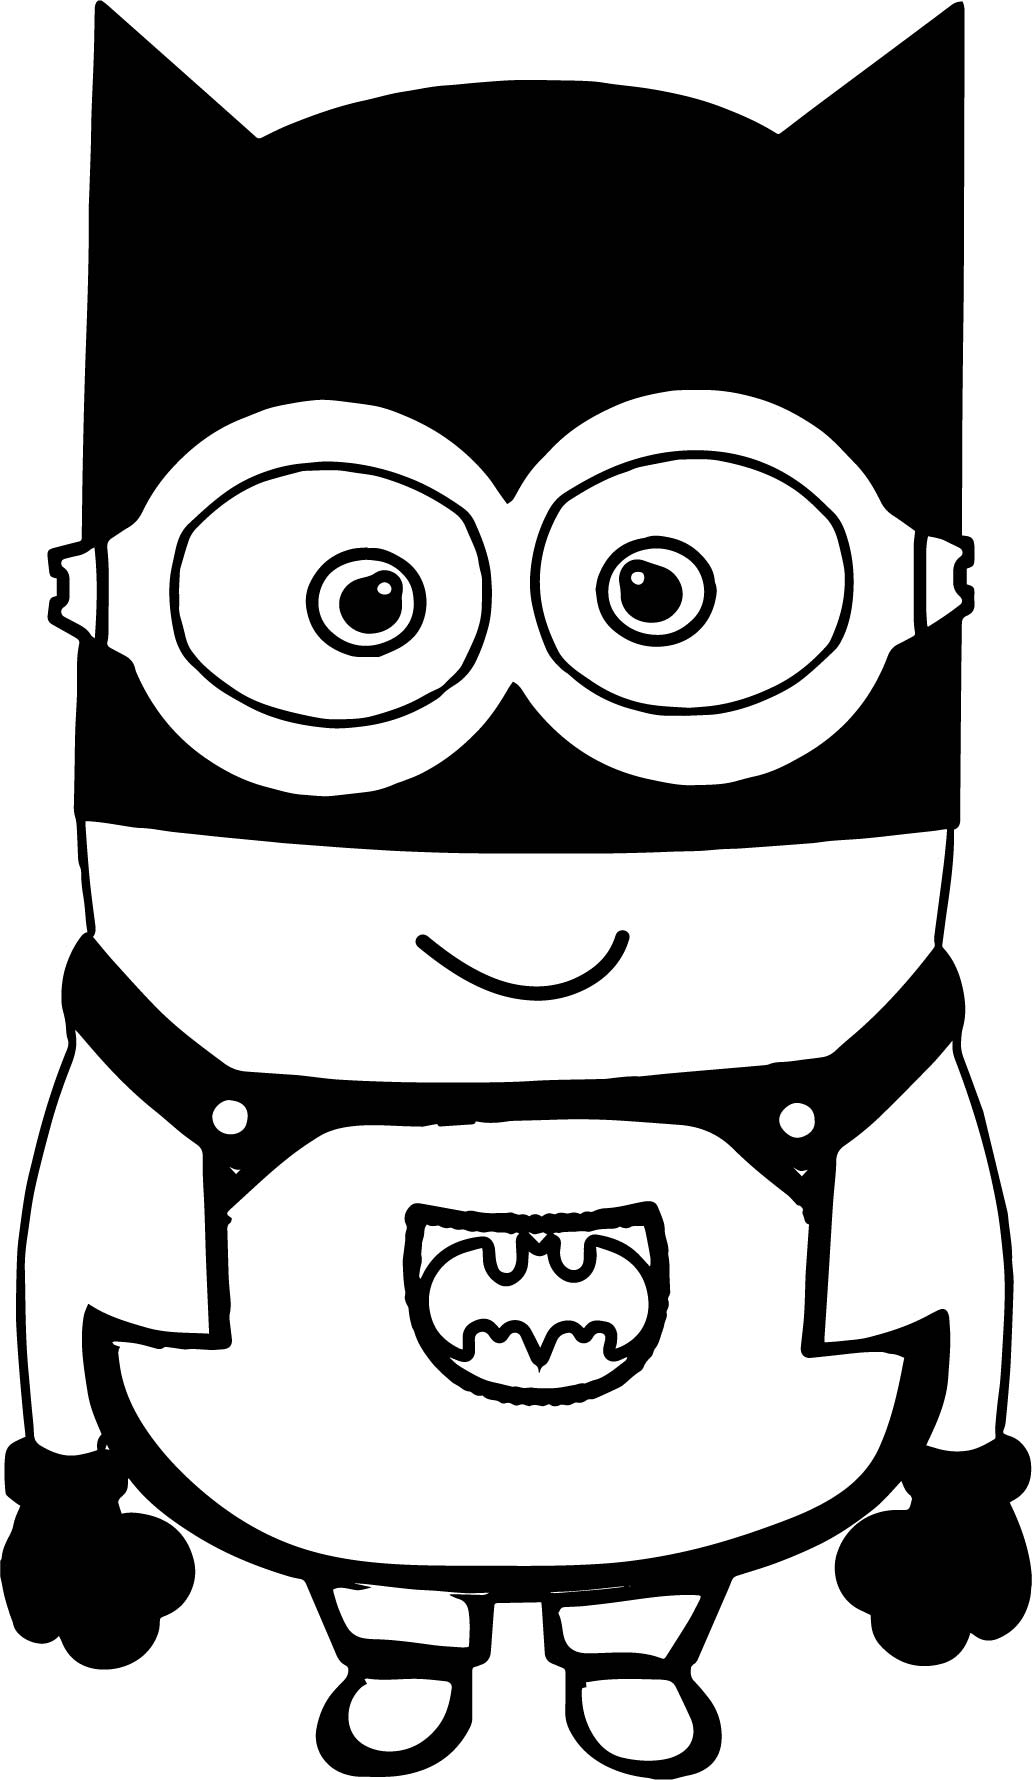 coloring minion pages minion coloring pages best coloring pages for kids pages minion coloring